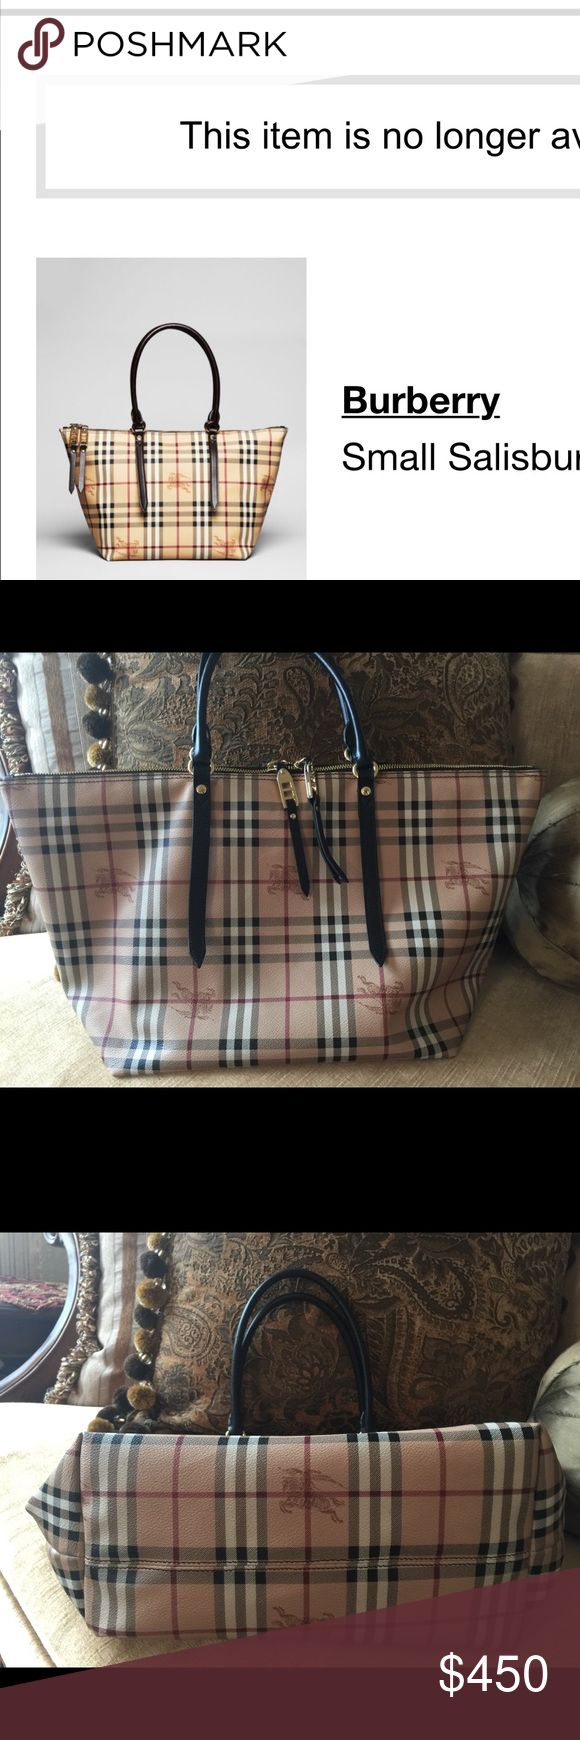 Burberry shoulder bag Authentic Burberry Medium Salisbury Haymarket Check Tote & Dust Bag. Seriously offer plz .what u see is what u get. Like new very good condition it's just big for me cuz I'm petite person Burberry Bags Shoulder Bags